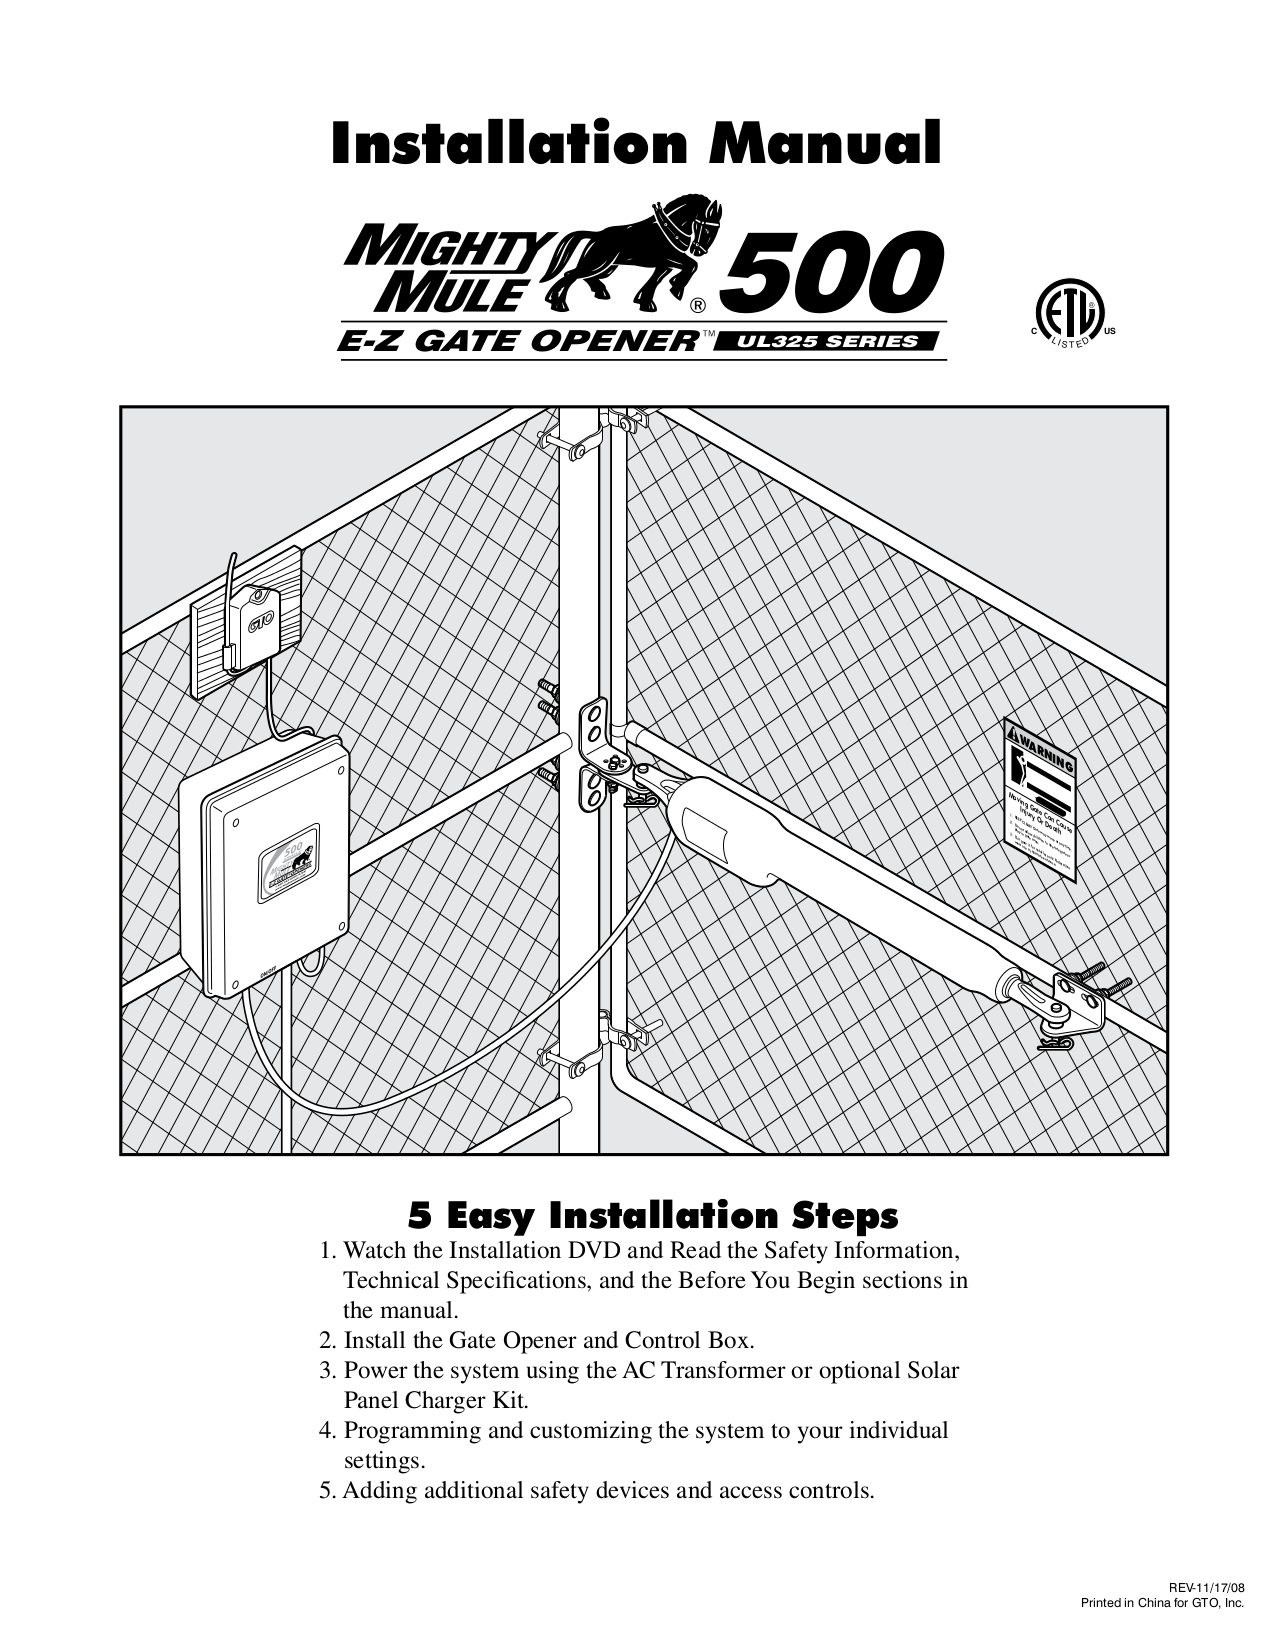 Mighty Mule Wiring Diagram Library For Automatic Gate Openerwiring Lock Fm143 Battery